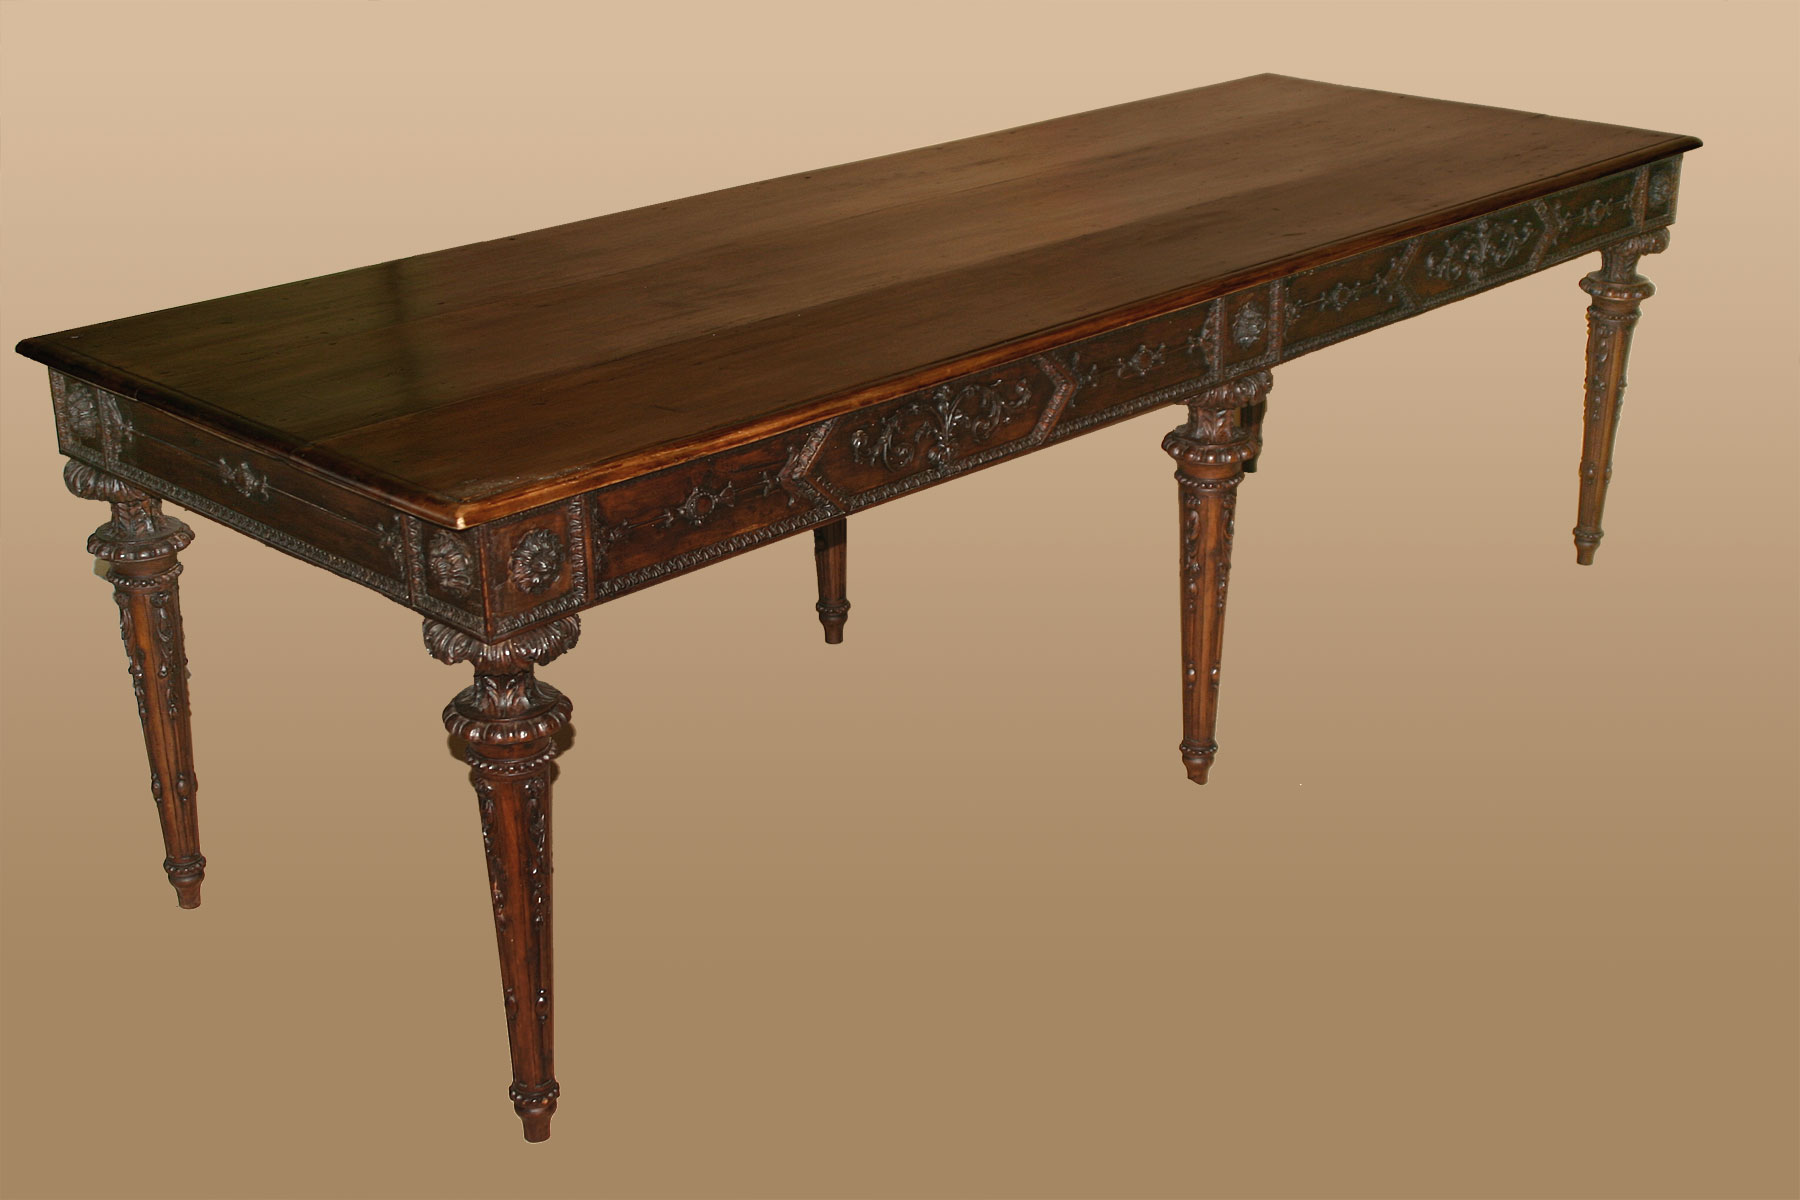 Very fine, Italian, Neoclassical period library table